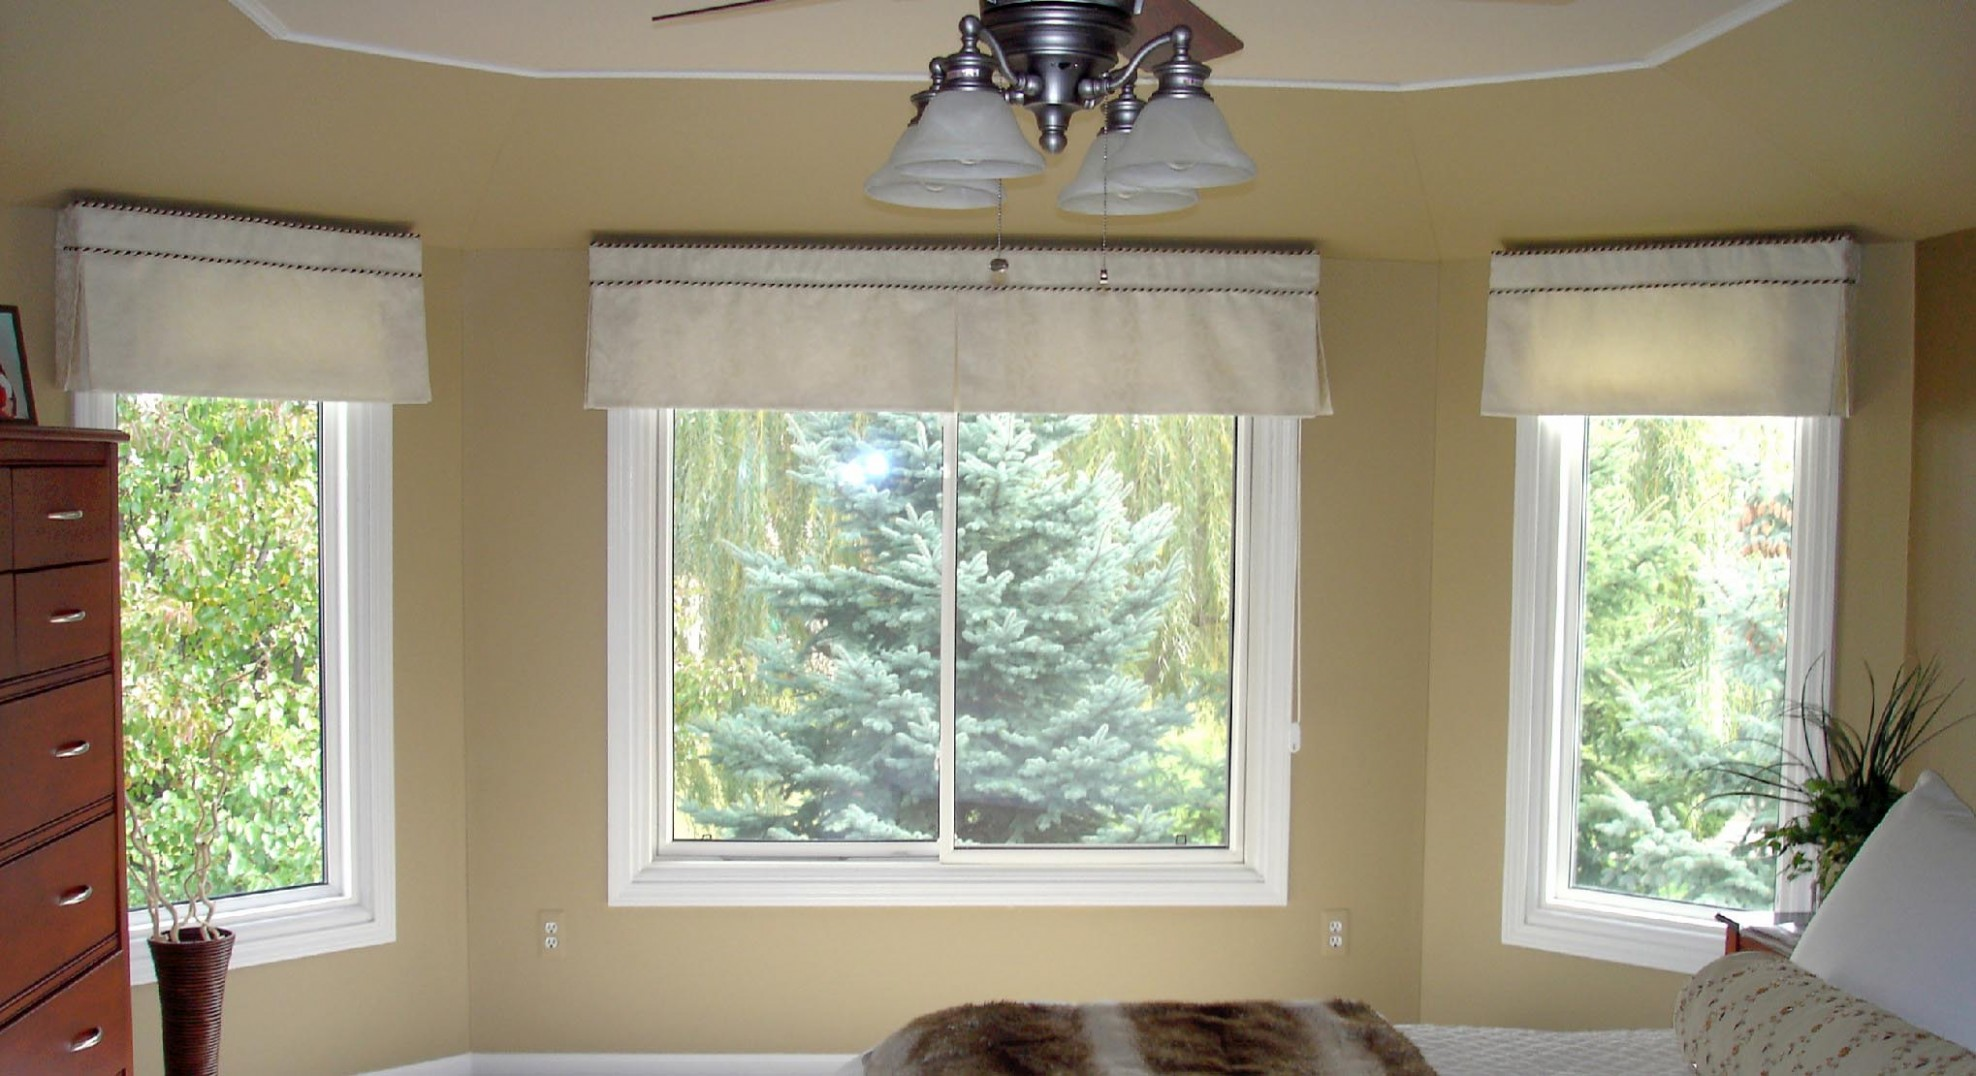 Bedroom Valances For Windows  Window Treatments Design Ideas - Window Valance Ideas For Bedroom